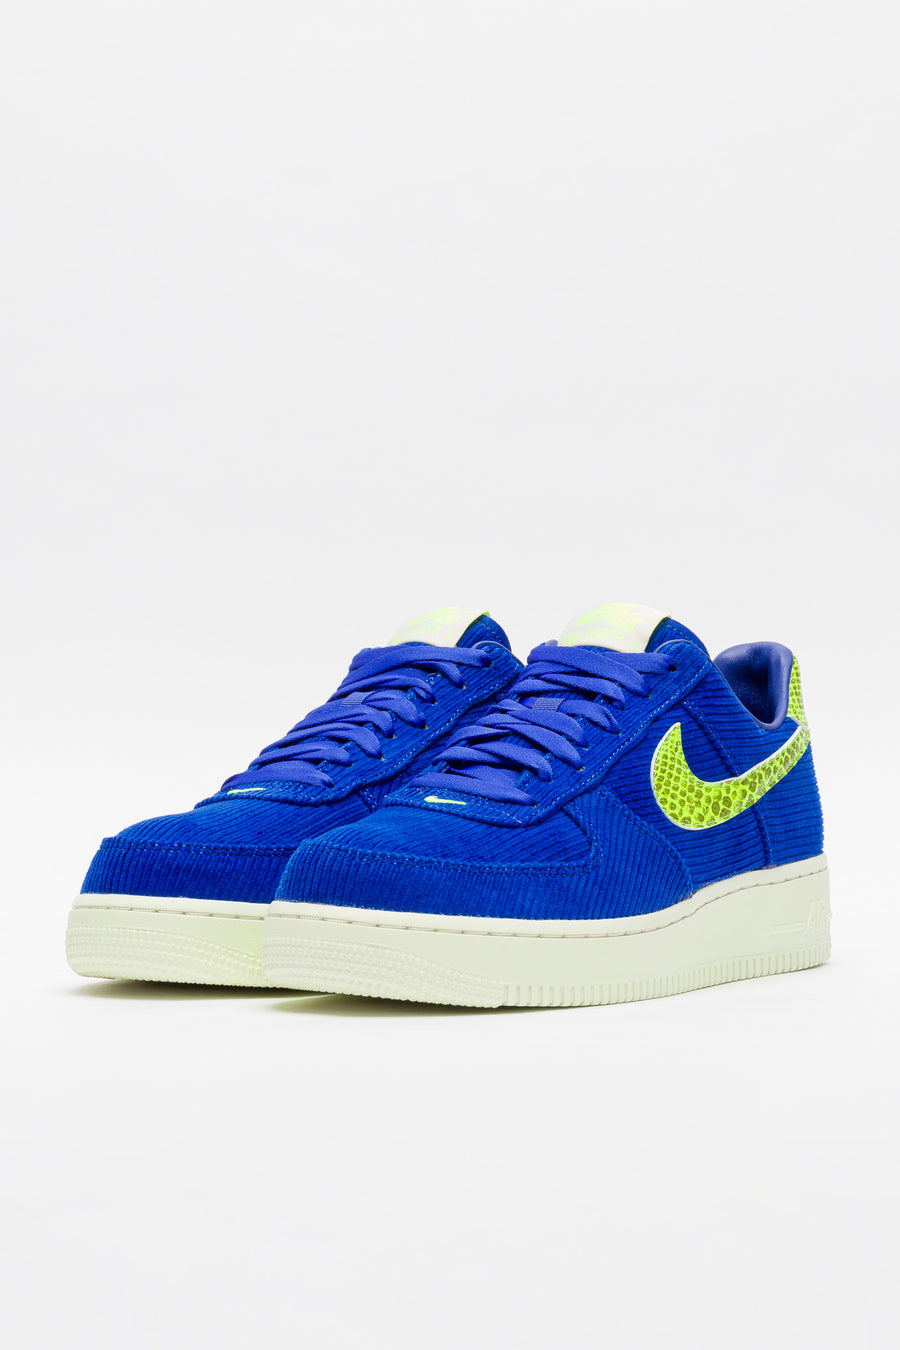 Nike Olivia Kim Air Force 1 07 in Hyper Blue/Volt - Notre